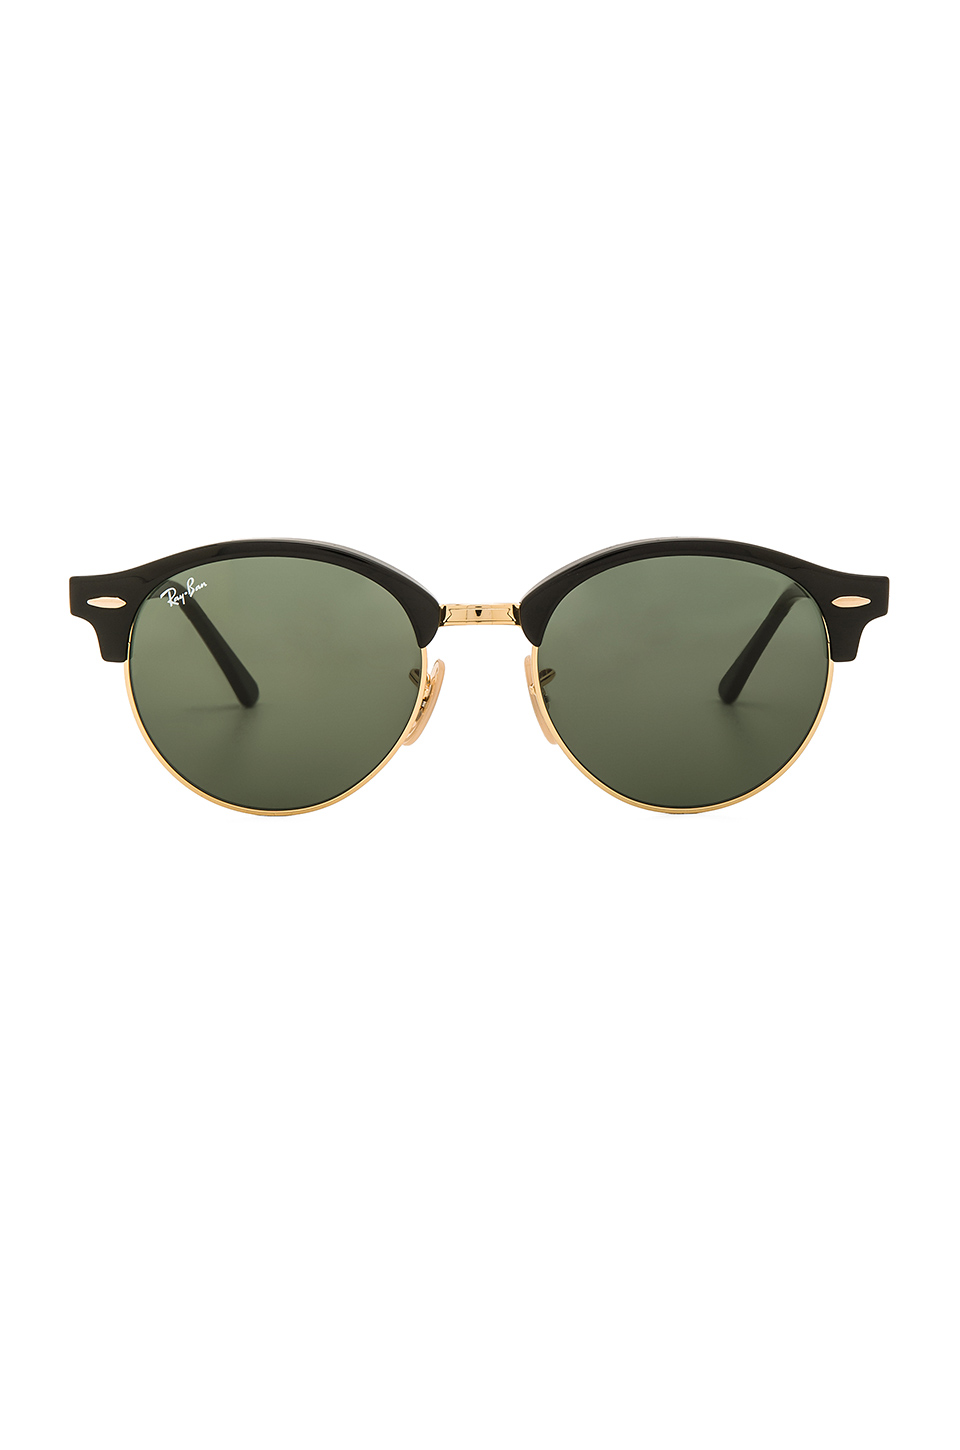 Ray-Ban Clubround in Black